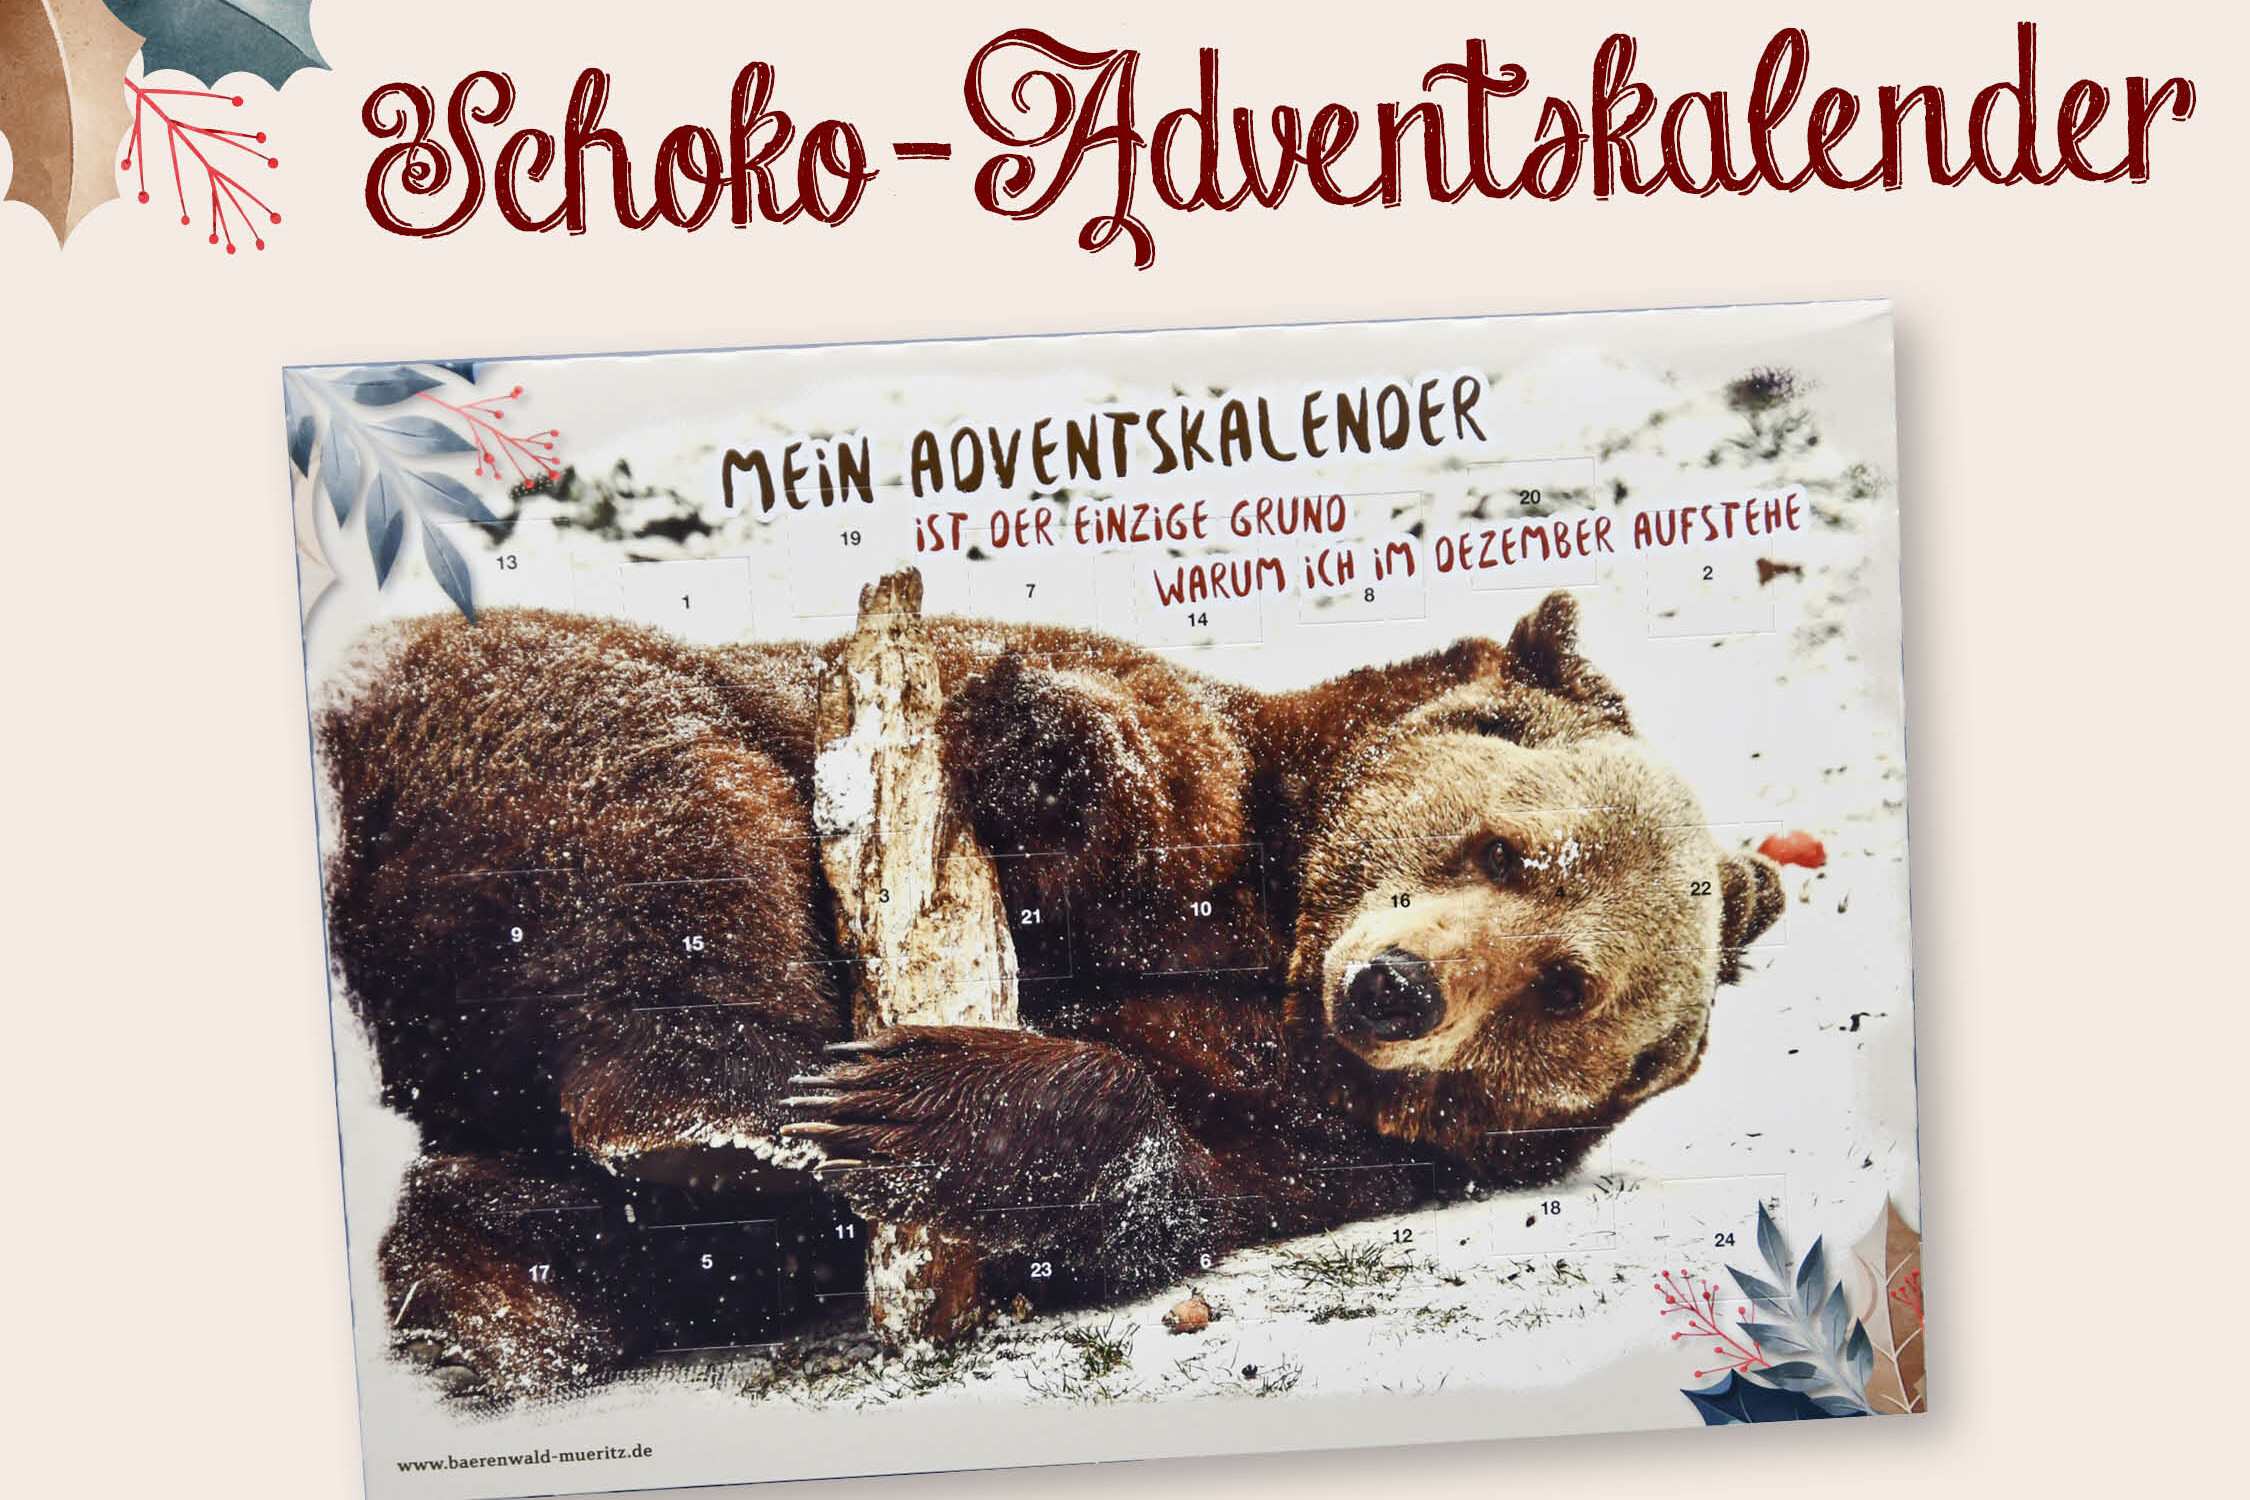 Schoko-Adventskalender